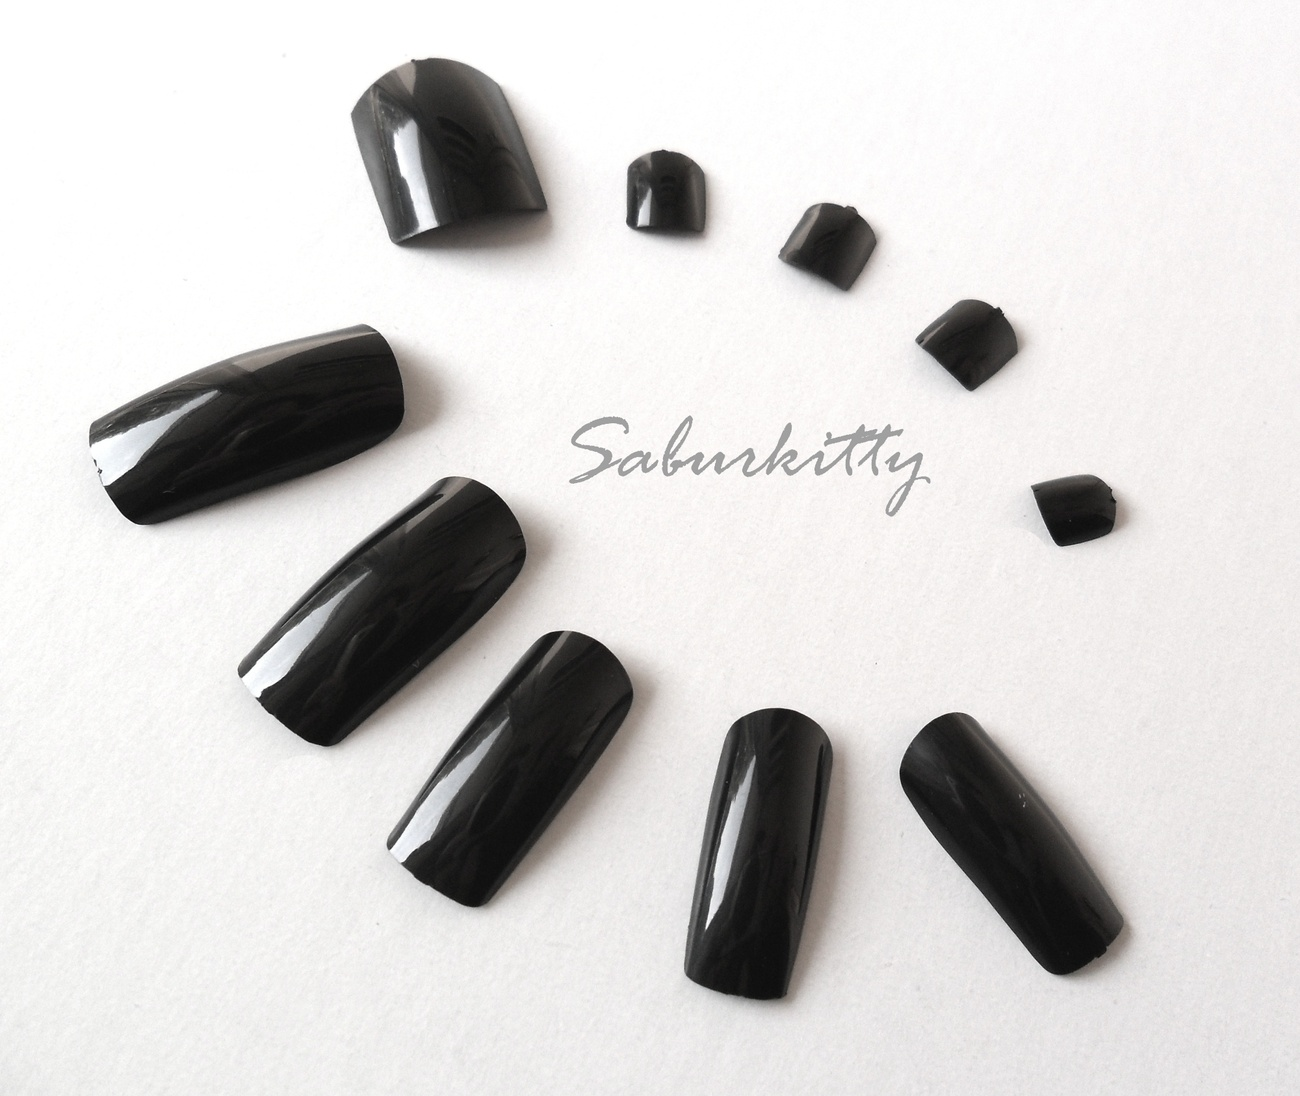 Black Fingernail plus Toenail Full Coverage Tips Set, Long Nails Halloween LARP